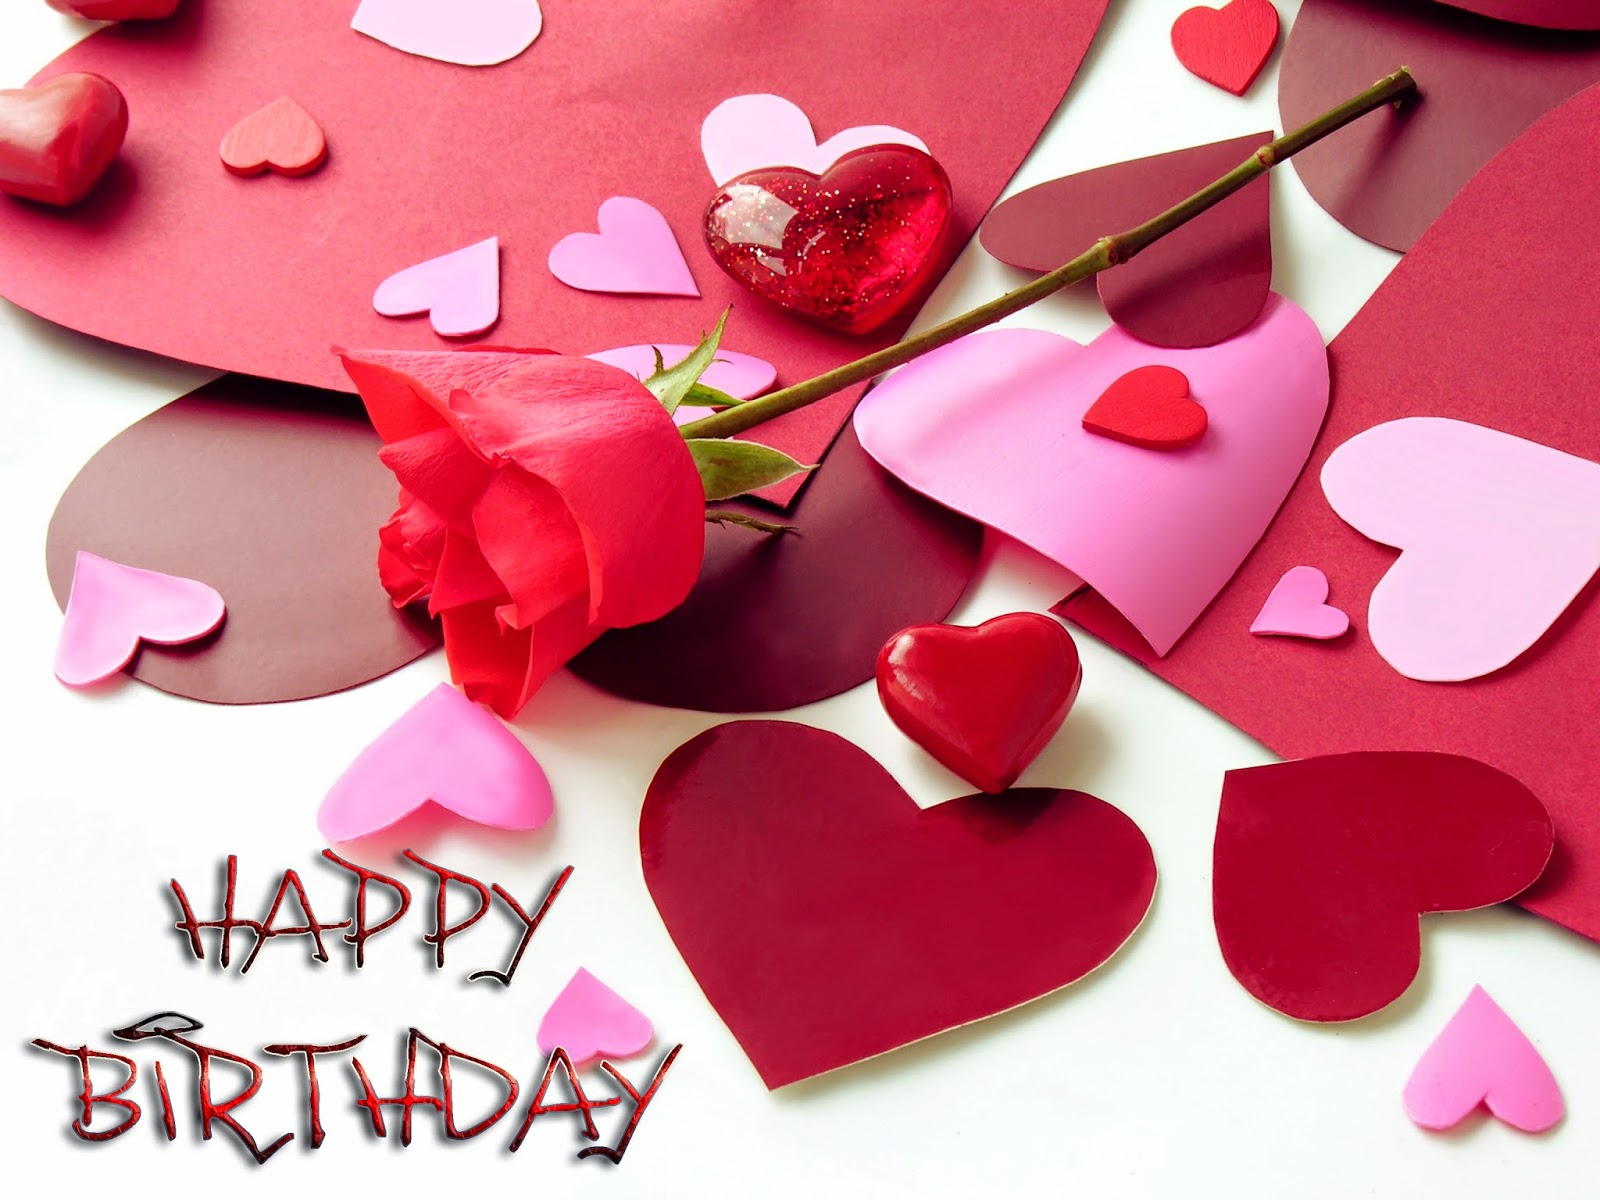 the-collection-of-romantic-birthday-wishes-that-your-girlfriend-will-never-forget-1